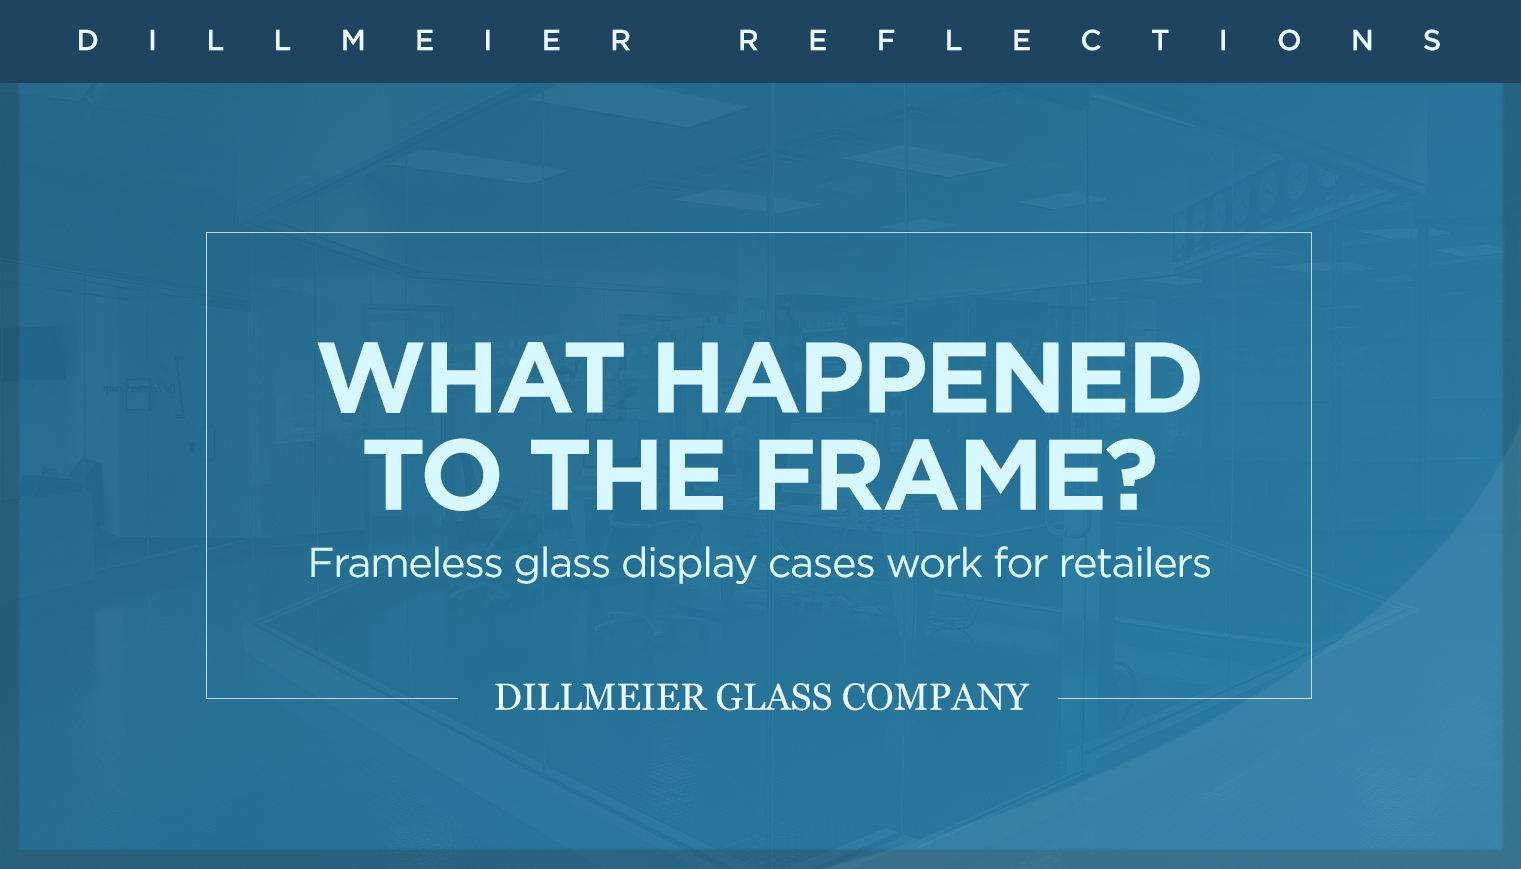 What Happened To The Frame?